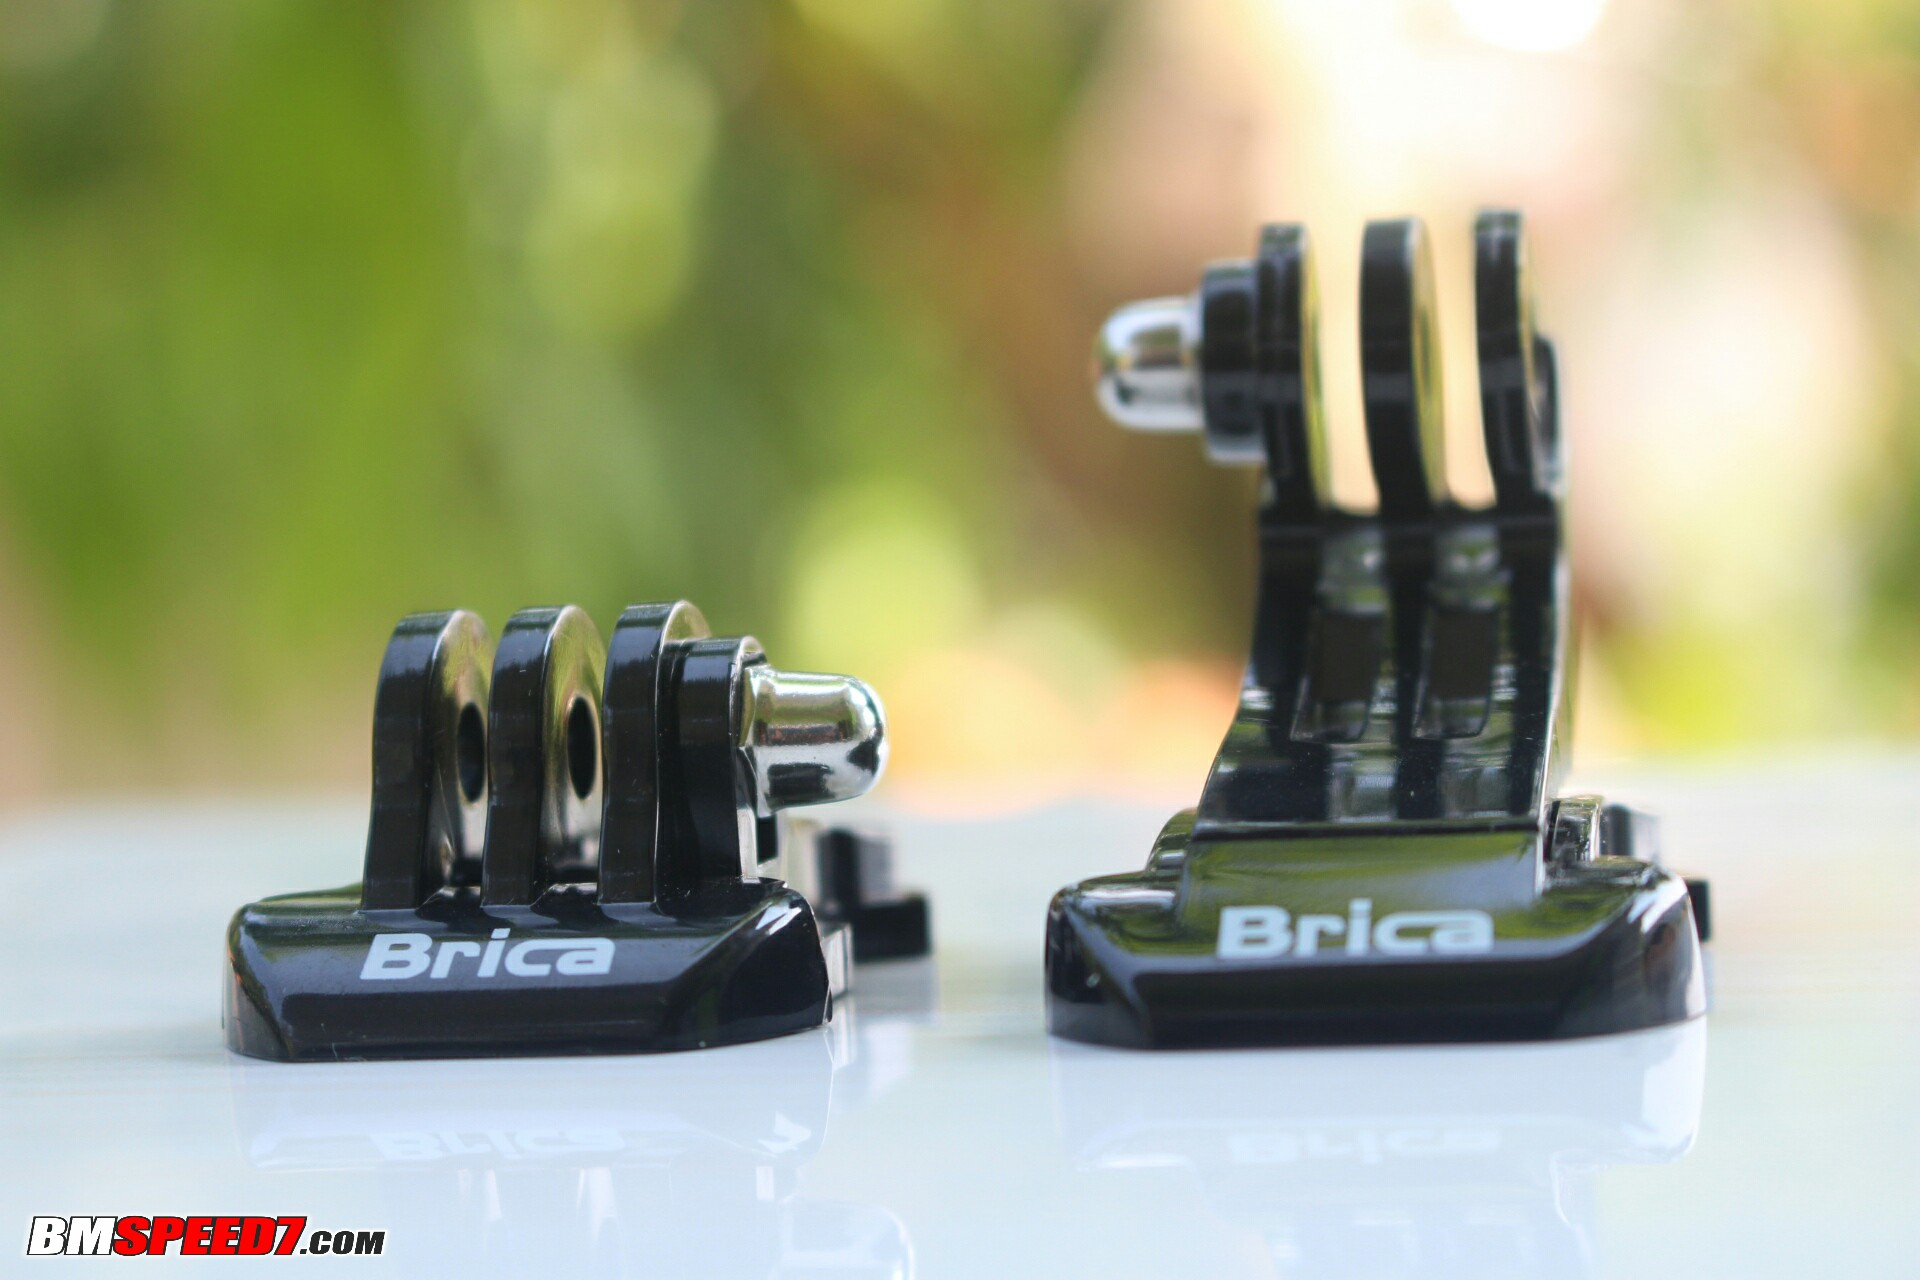 Quick-Release-Mounting-BPRO5-Alpha-Plus-Silver-BMSPEED7.COM_